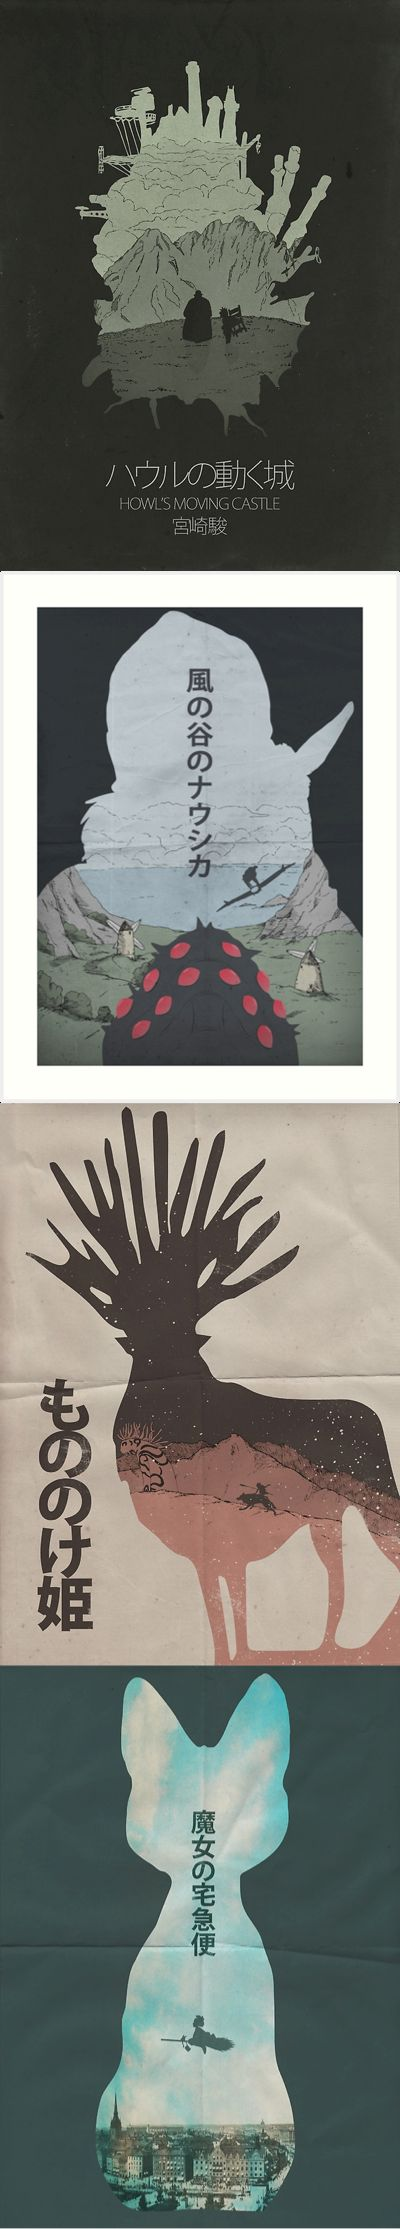 Minimalist Studio Ghibli Film Posters by OurBrokenHouse